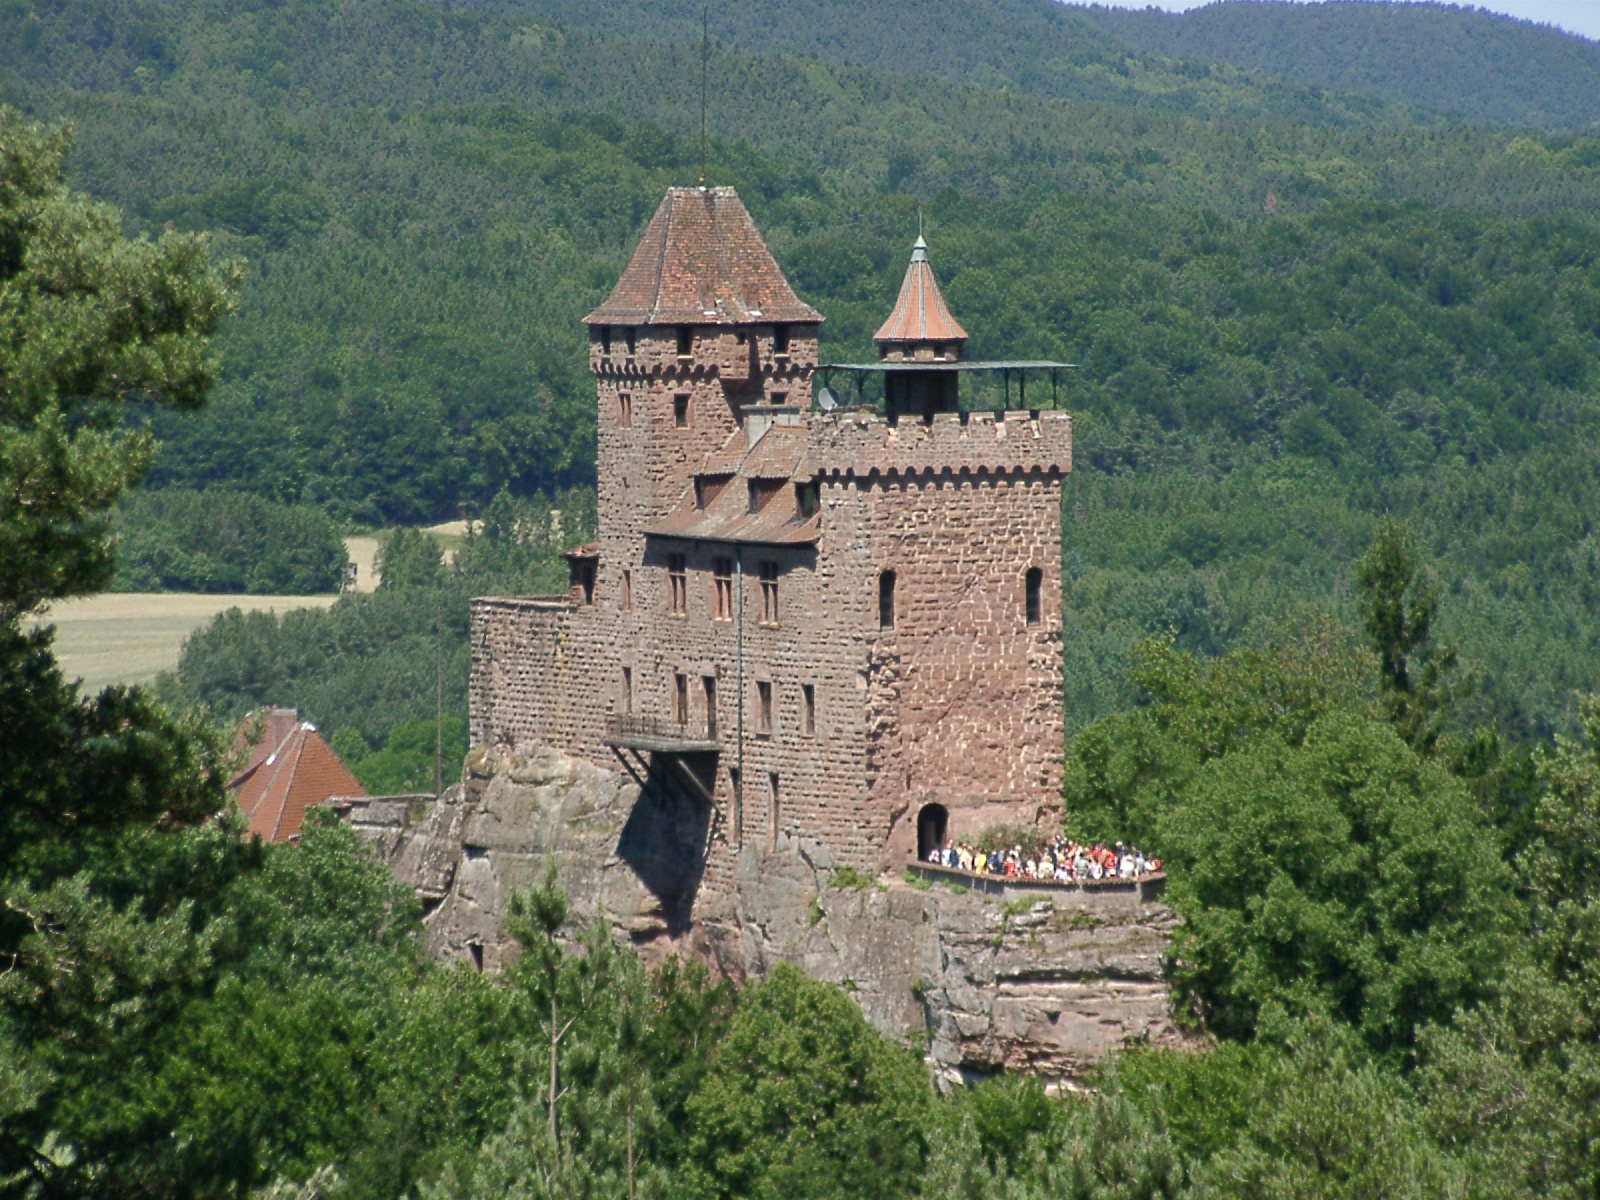 Berwartstein Castle